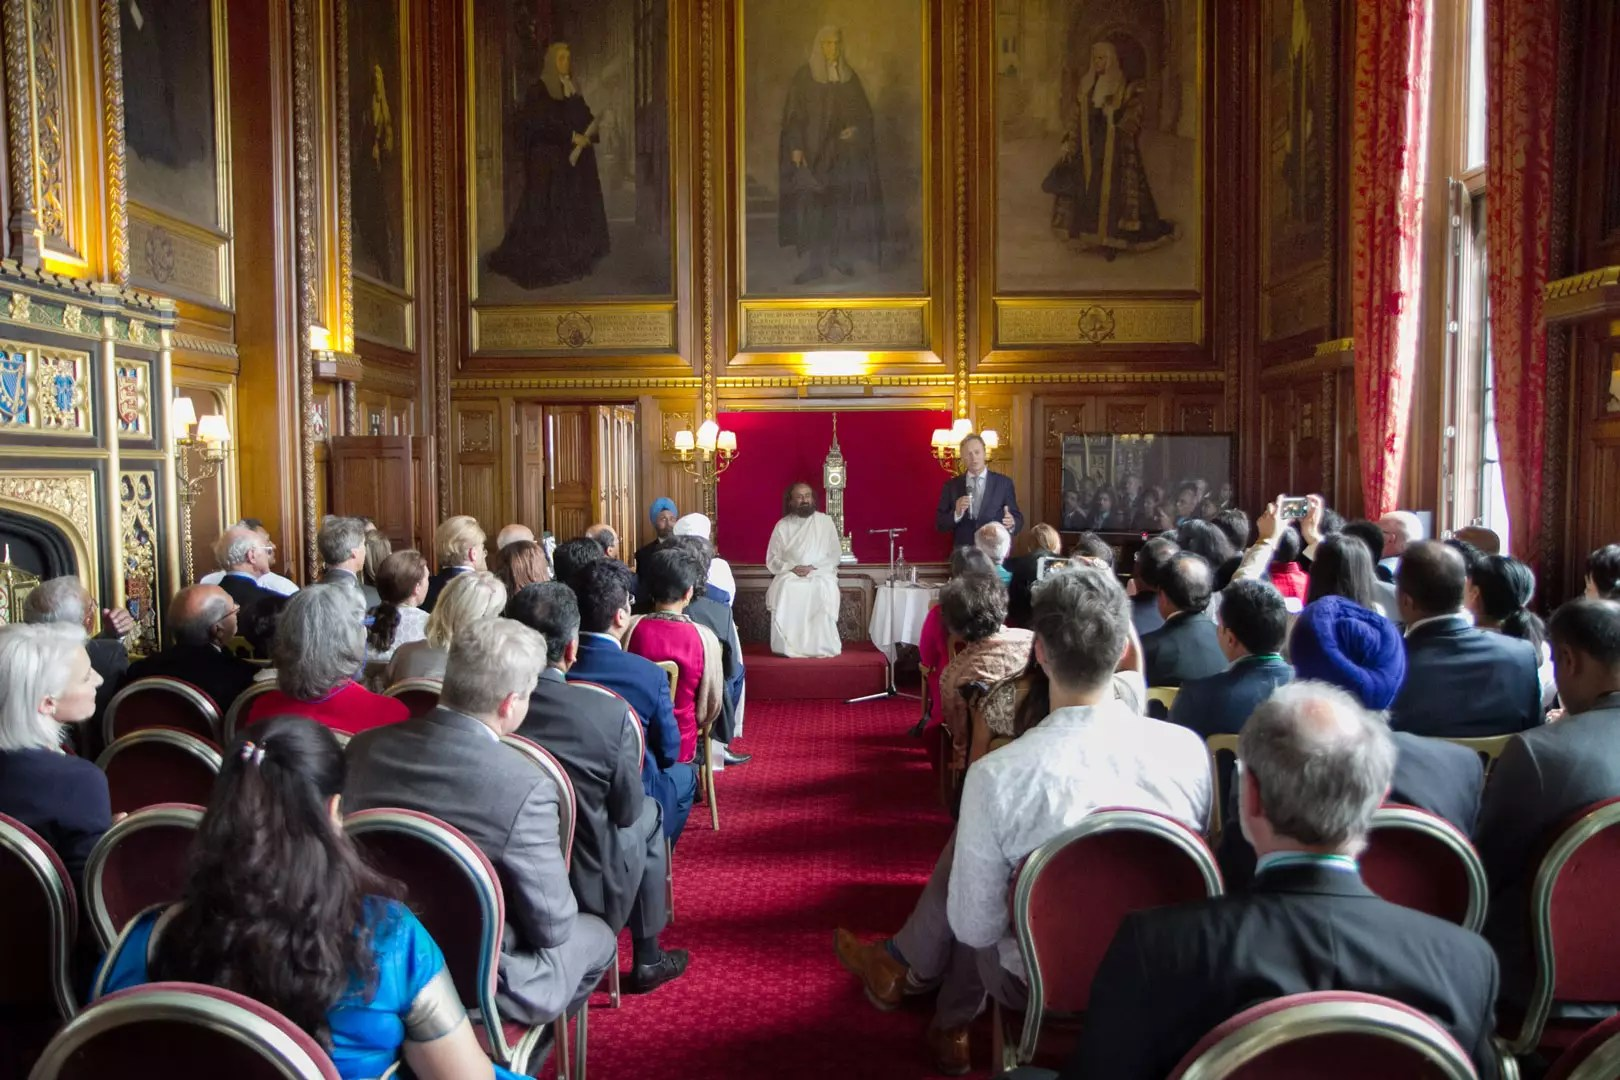 Sri Sri Ravi Shankar addresses Lords, Ladies & MPs in the Speaker's Chambers at the House of Commons